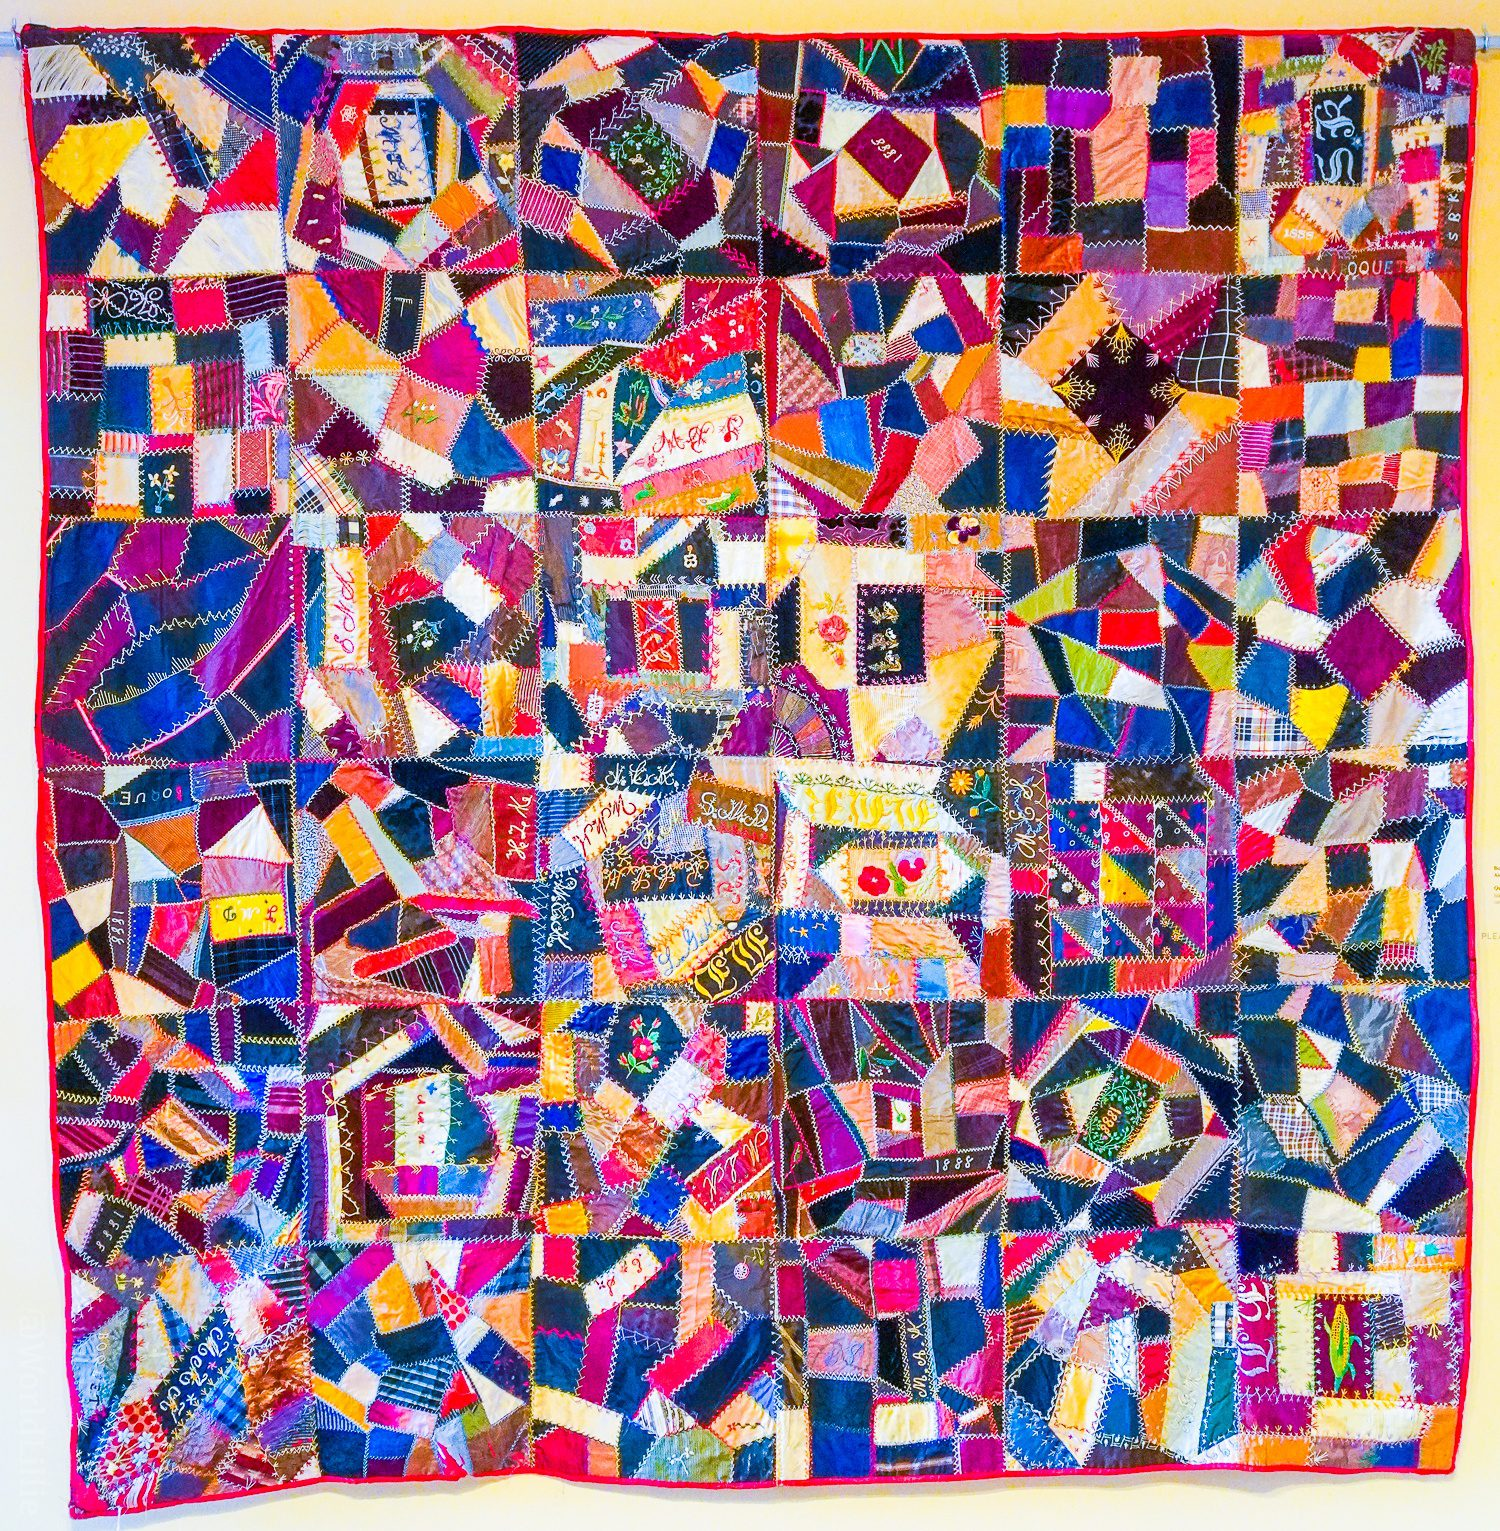 An ornate hand-sewn quilt near the room of drawers.